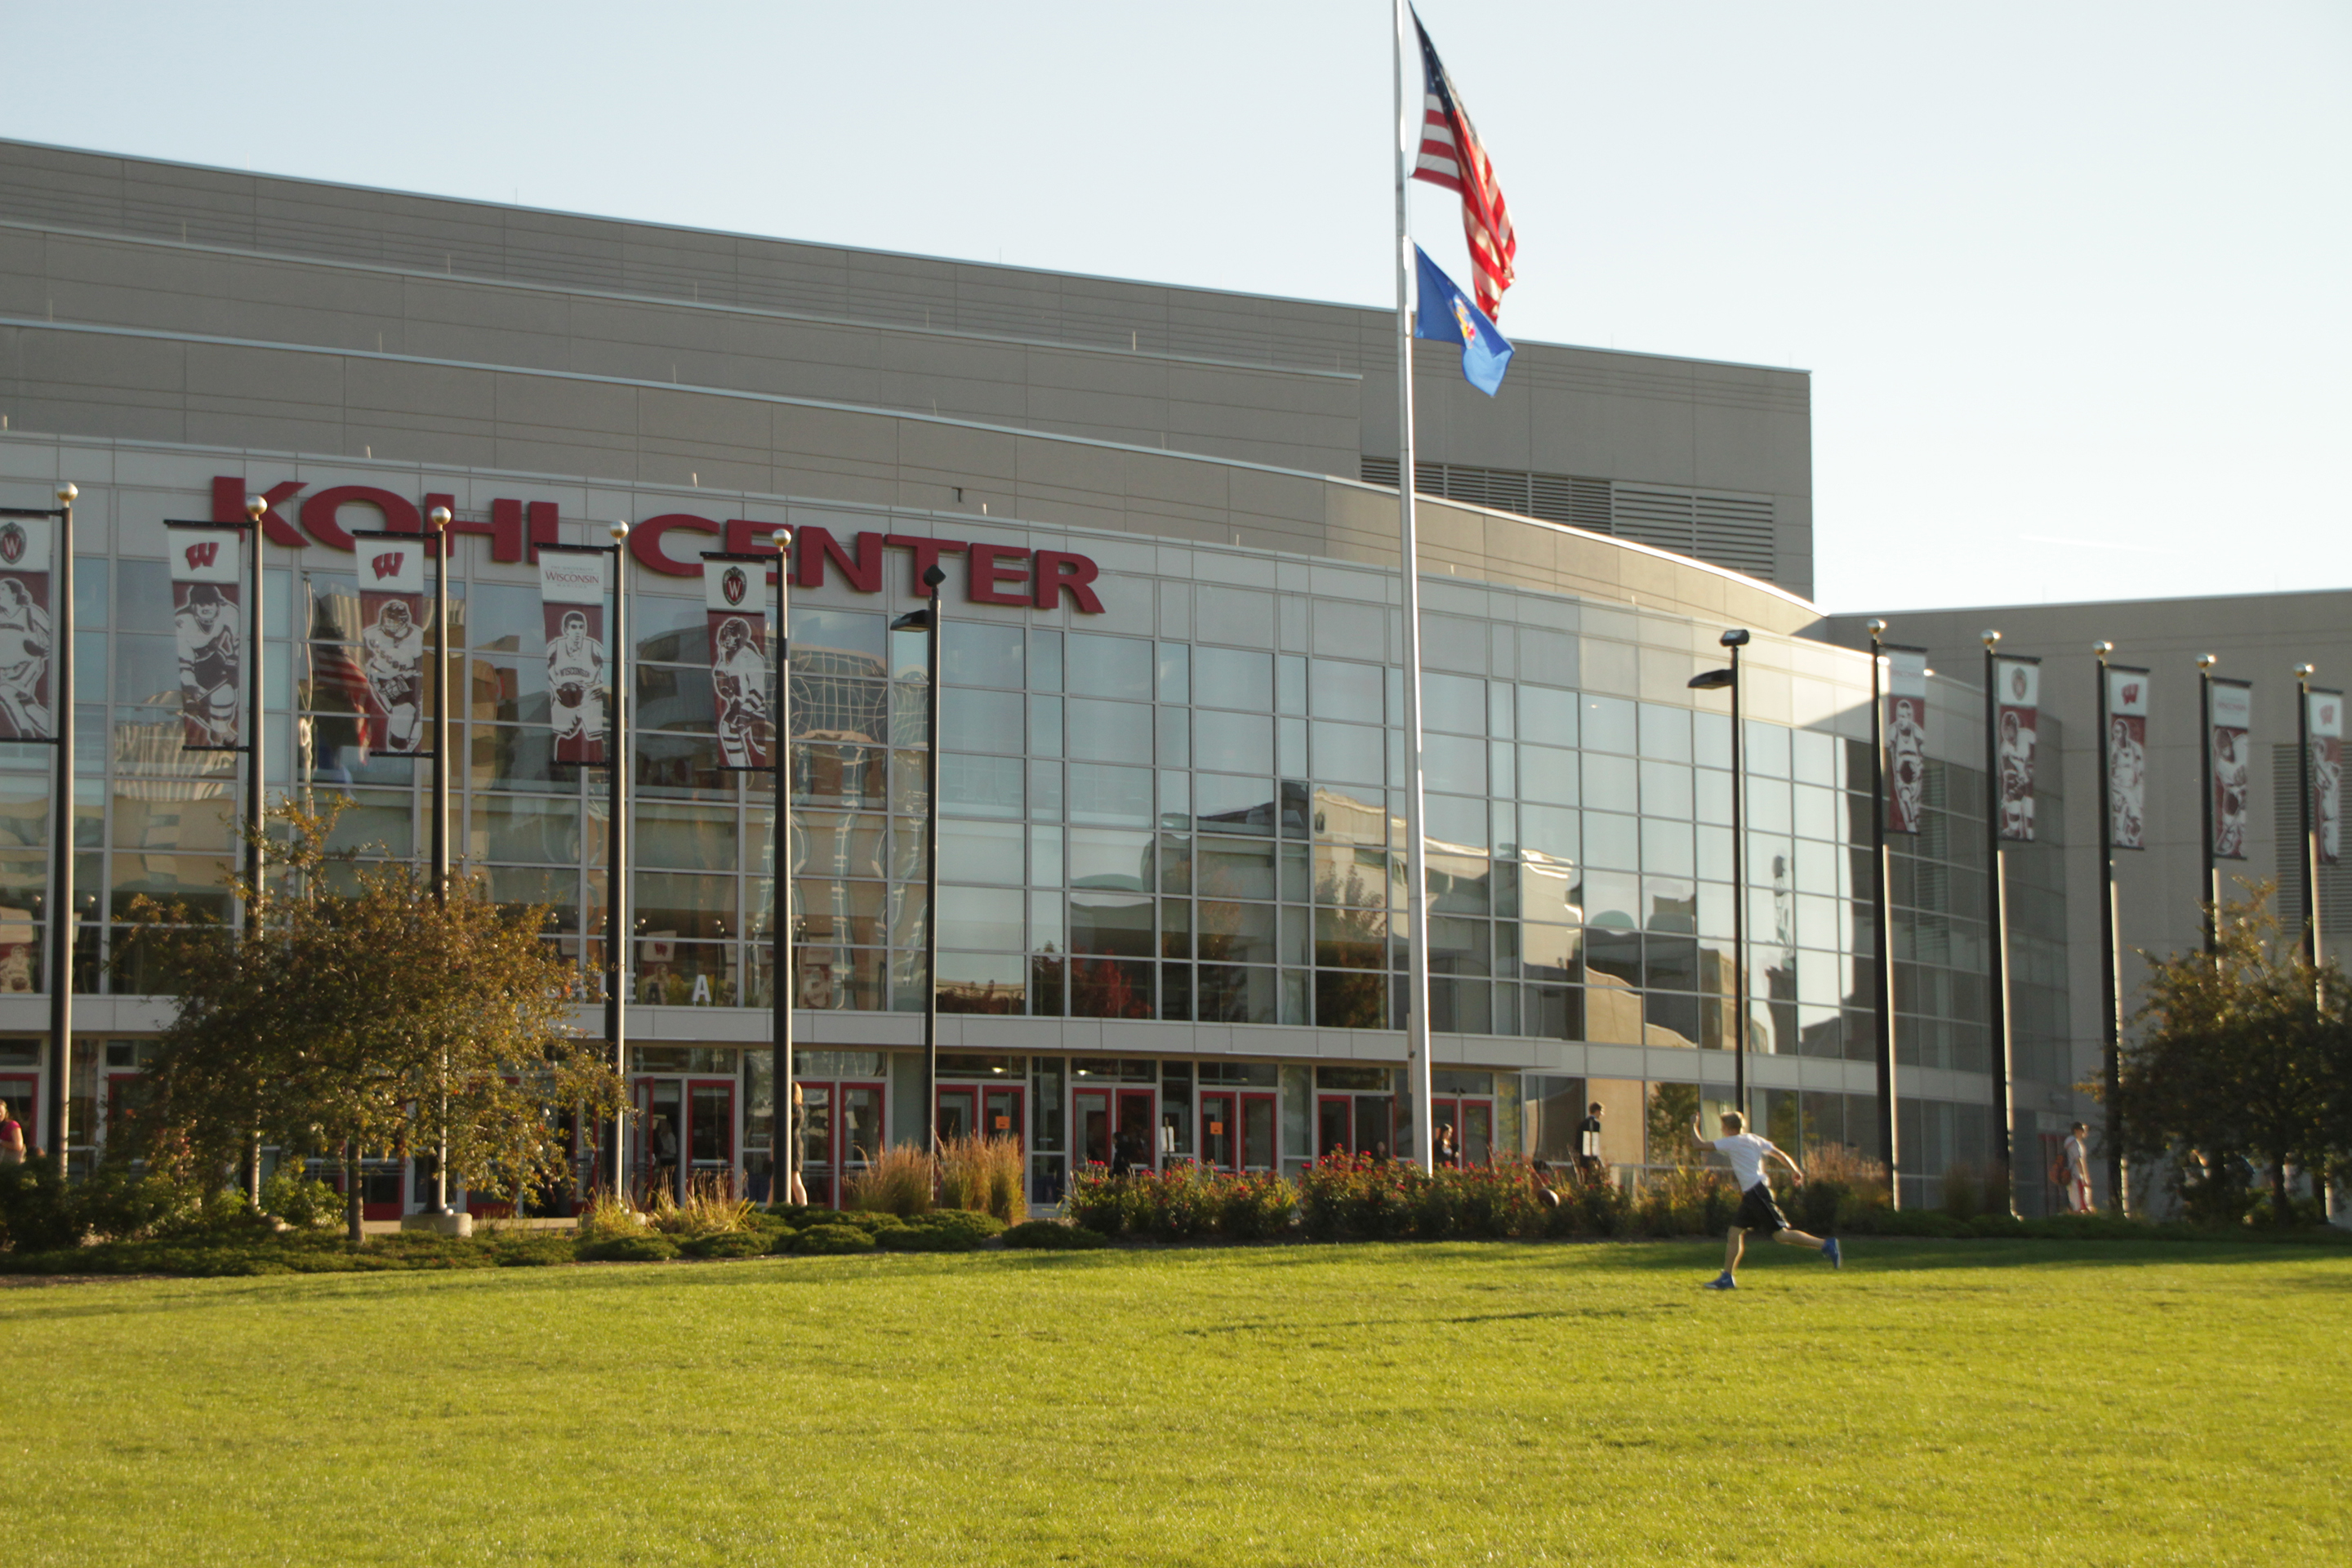 The Kohl Center is an icon of the University of Wisconsin - Madison campus and a centerpiece of the University's Athletic Department.